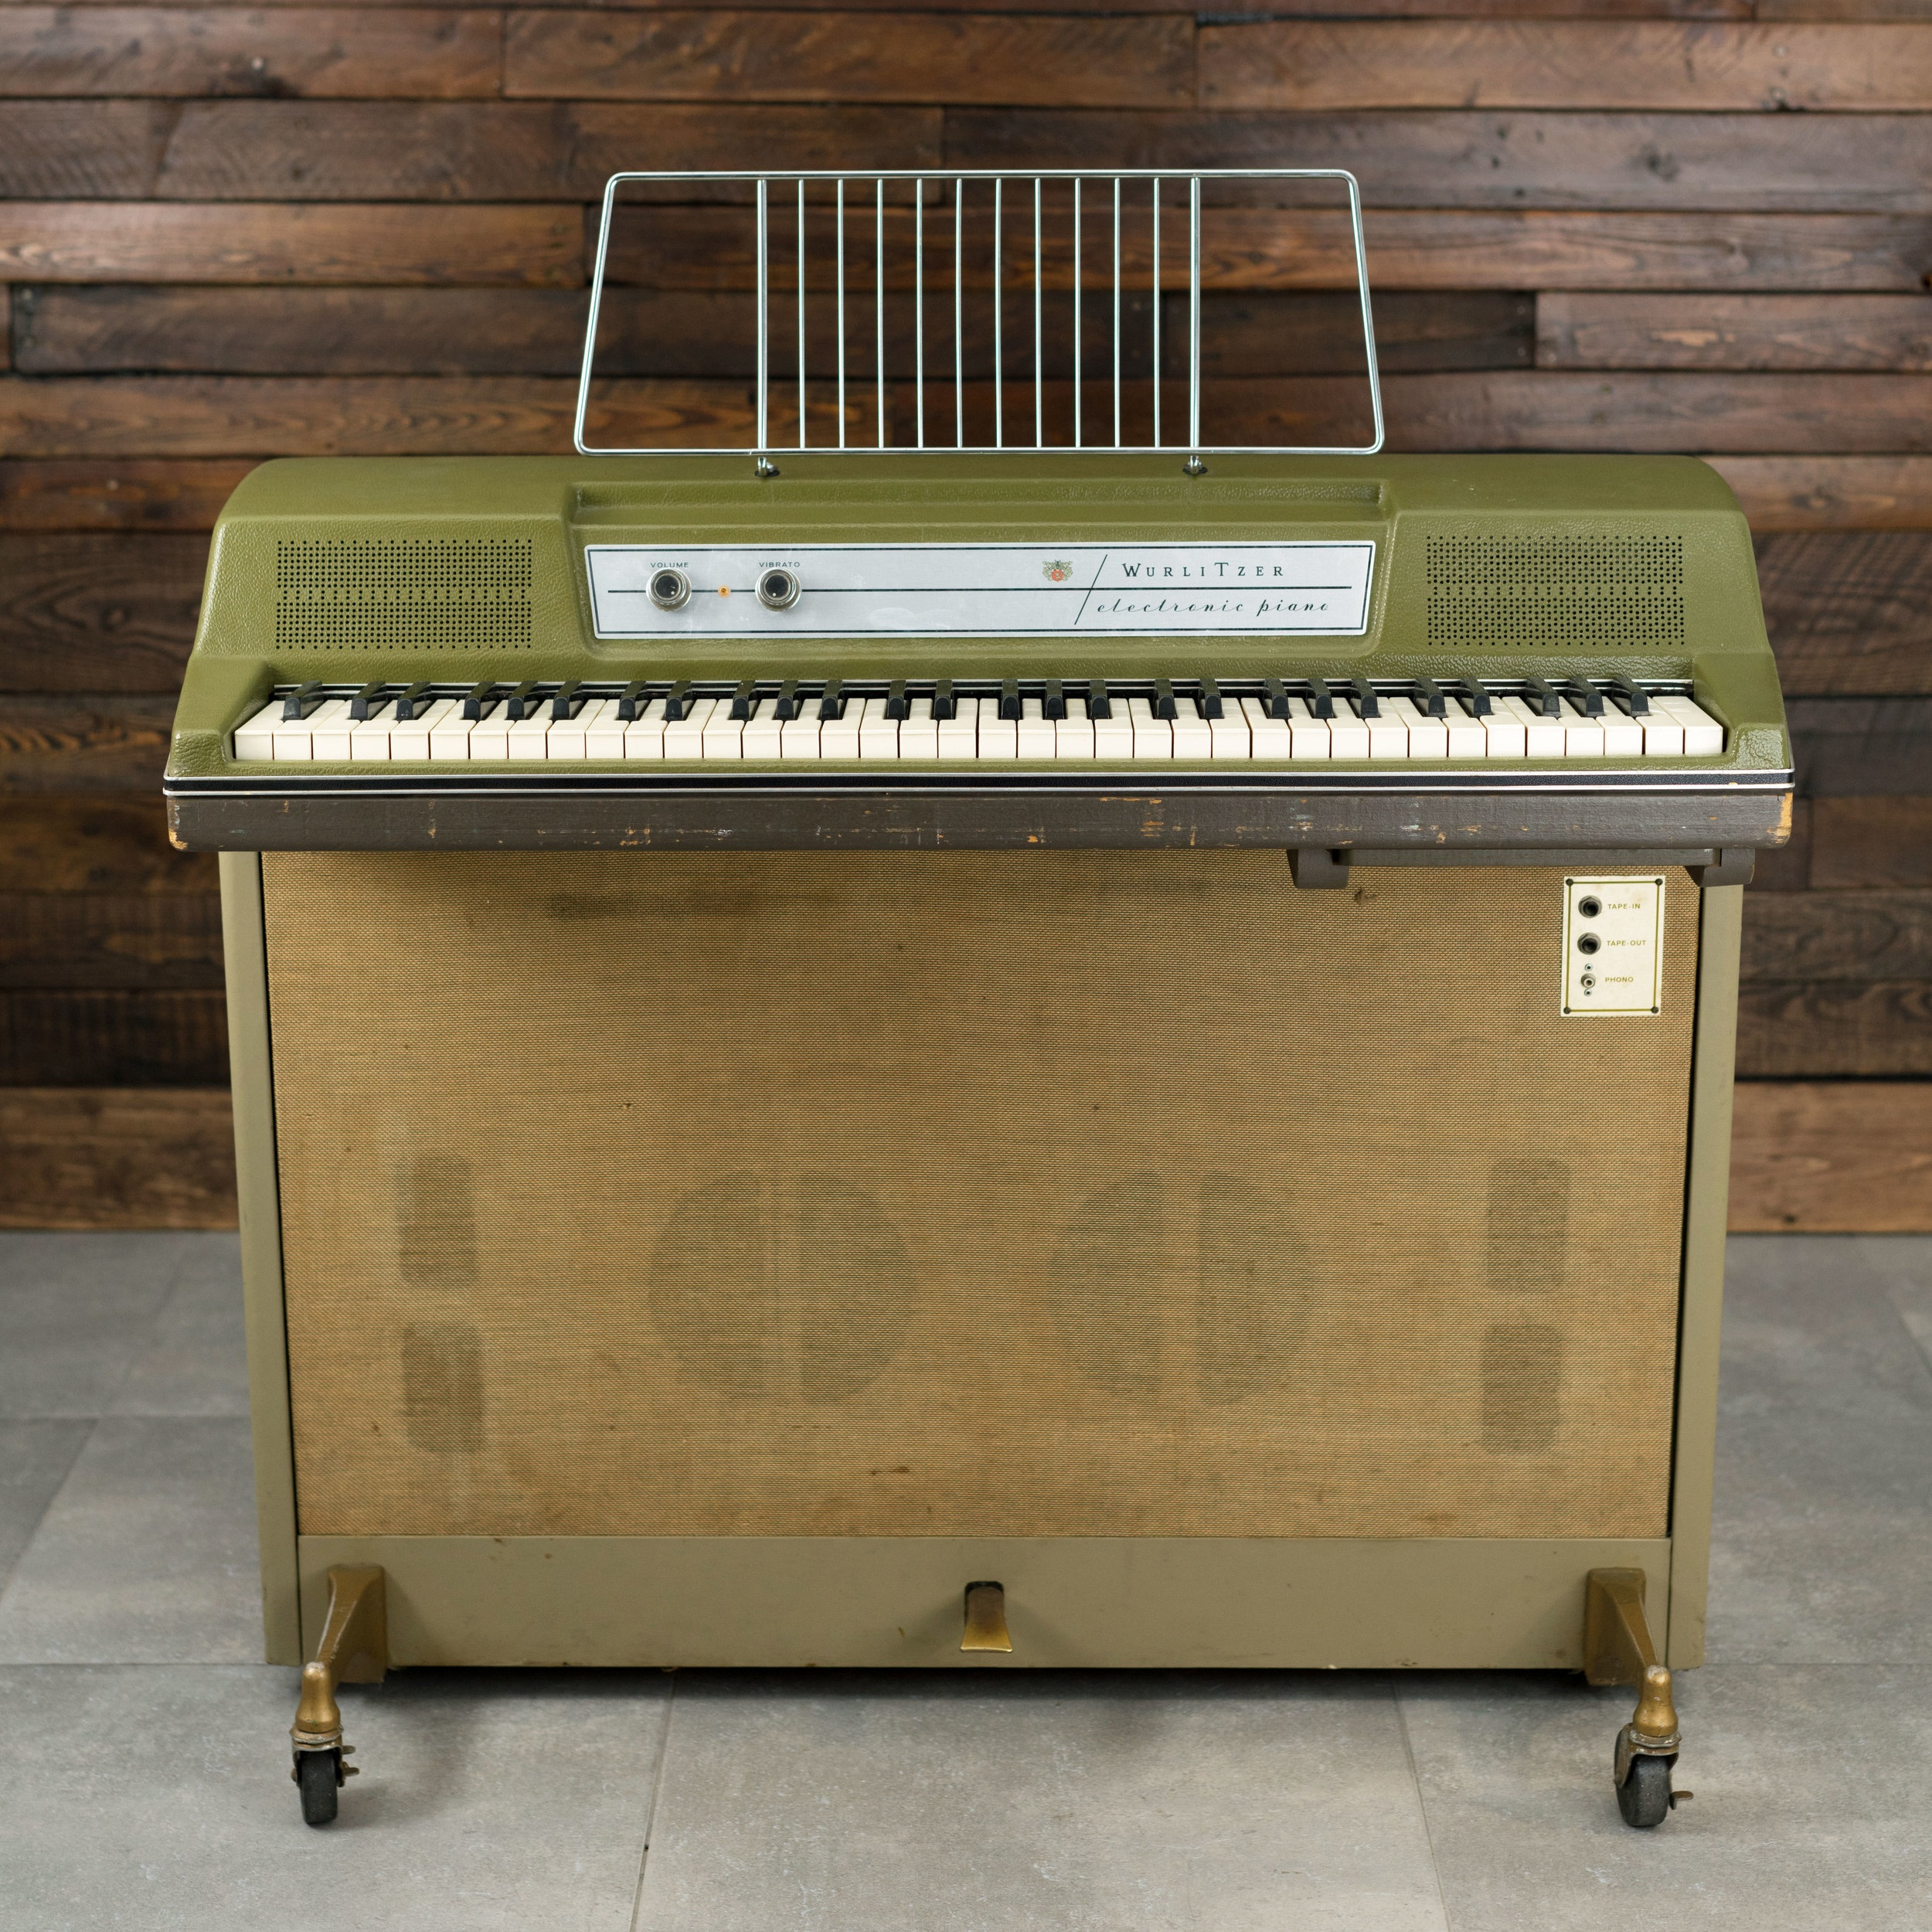 Wurlitzer 214 in Avocado green with gold hardware and wheels.